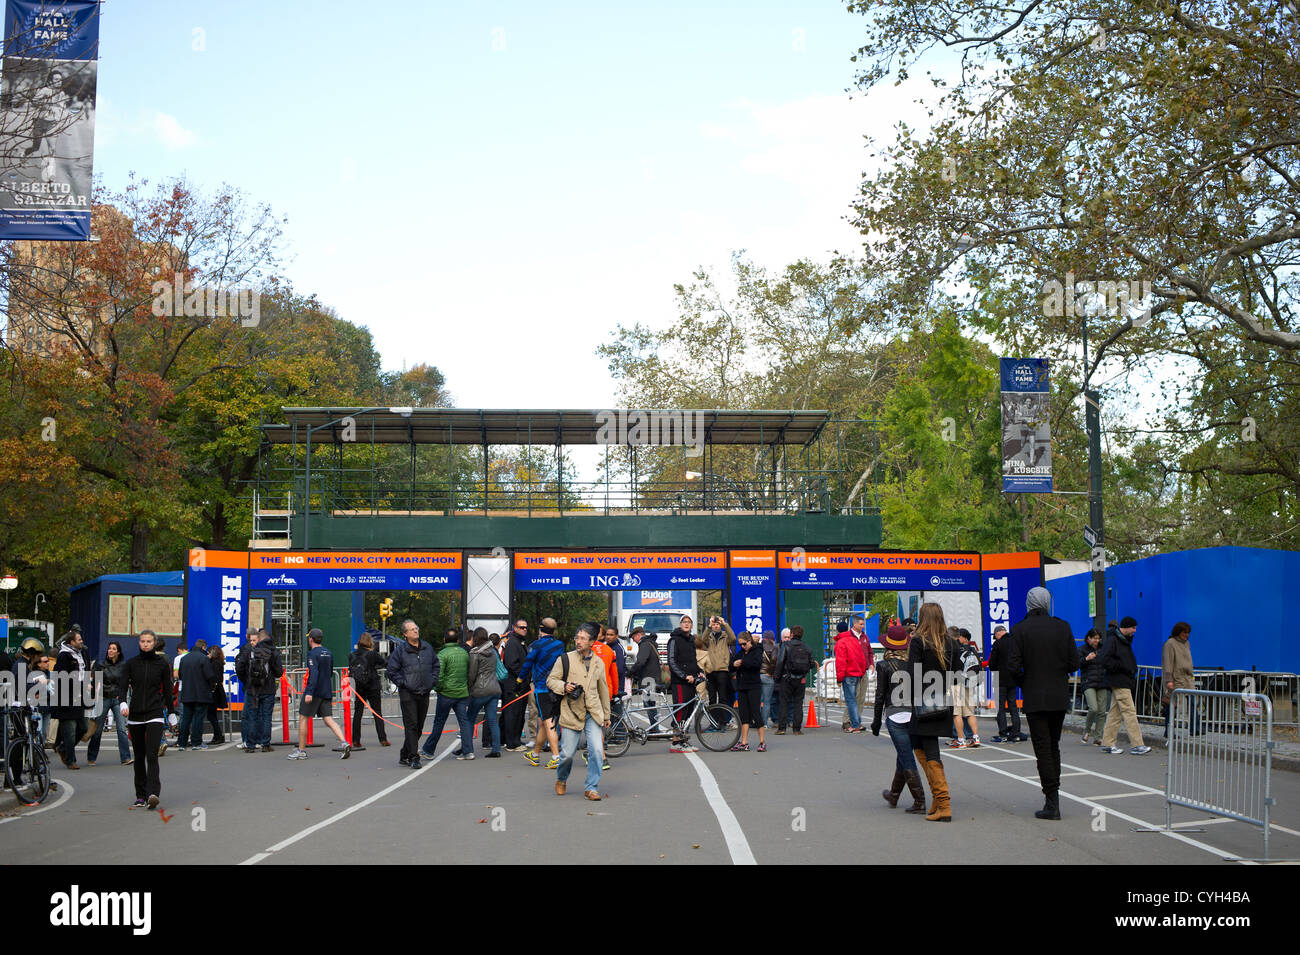 People congregate in Central Park at the finish line for the 43rd Annual ING New York City Marathon - Stock Photo